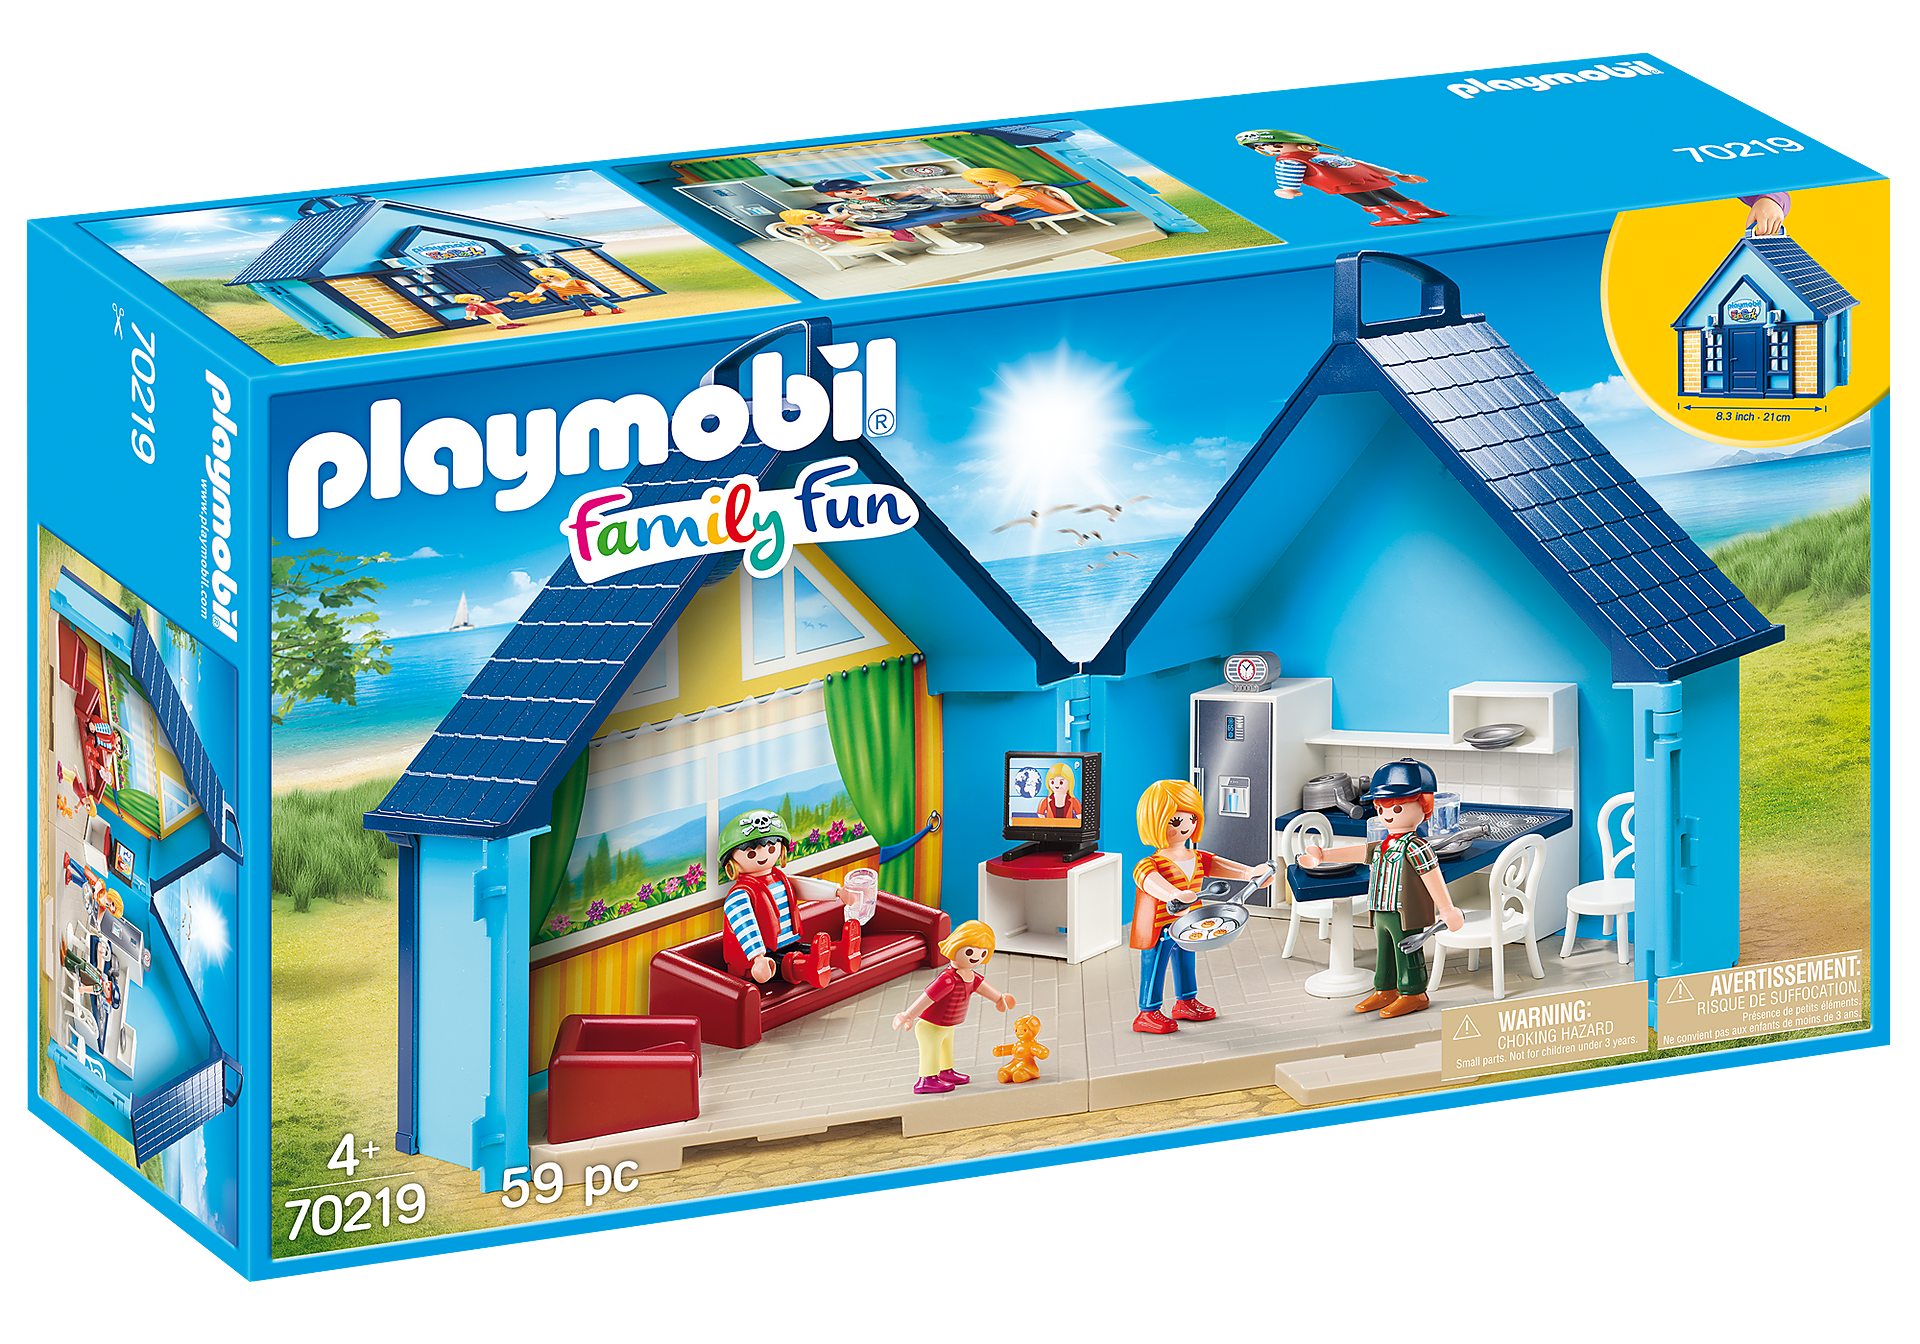 70219 PLAYMOBIL-FunPark Summerhouse Playbox zoom image2